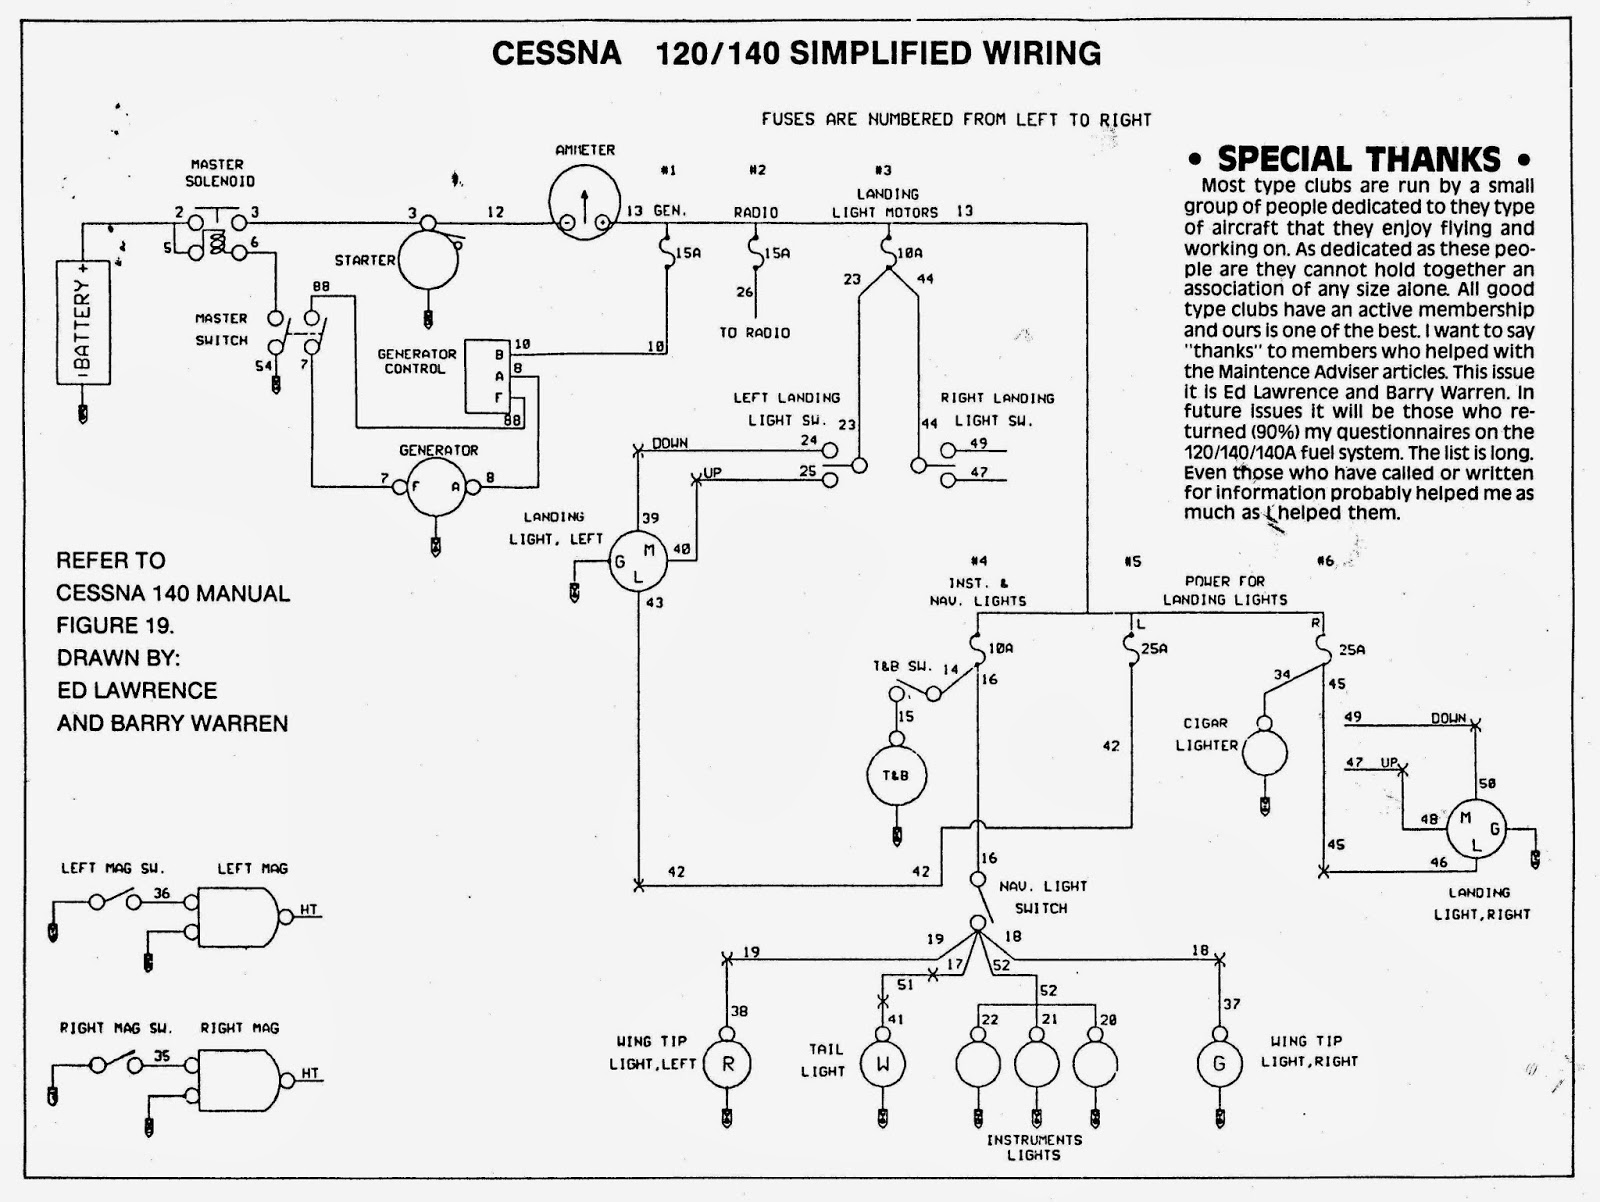 How to read aircraft wiring diagram manual wiring diagram aircraft wiring diagram diagrams schematics aircraft wiring diagram symbols source asfbconference2016 Choice Image